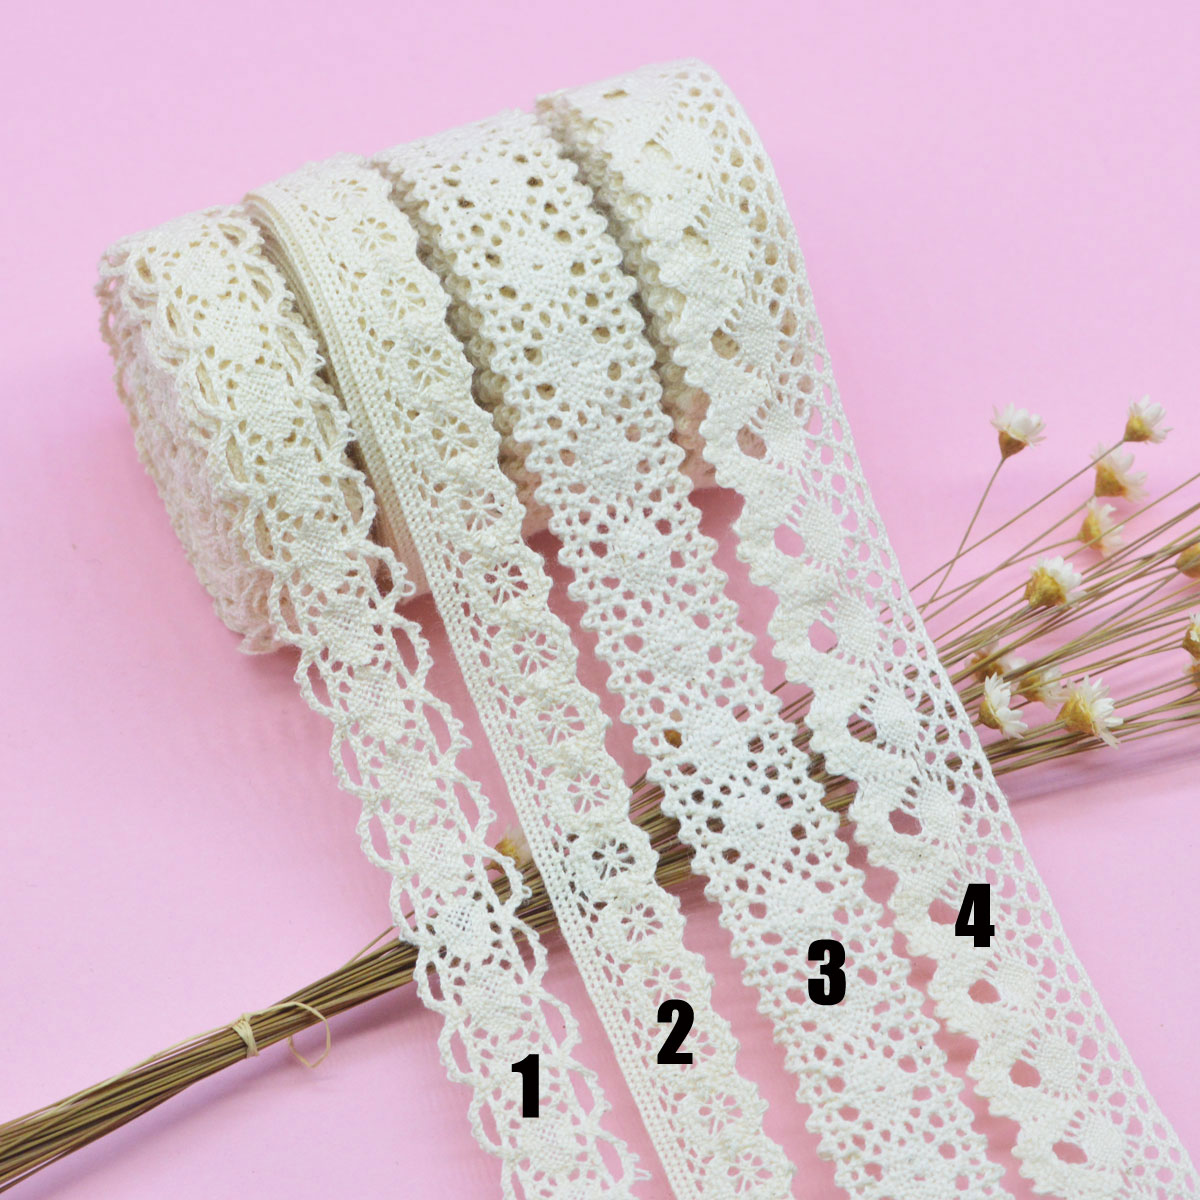 5 Yards Love Heart White Elastic Lace Trim Sewing Fabric DIY Crafts Supplies 3cm